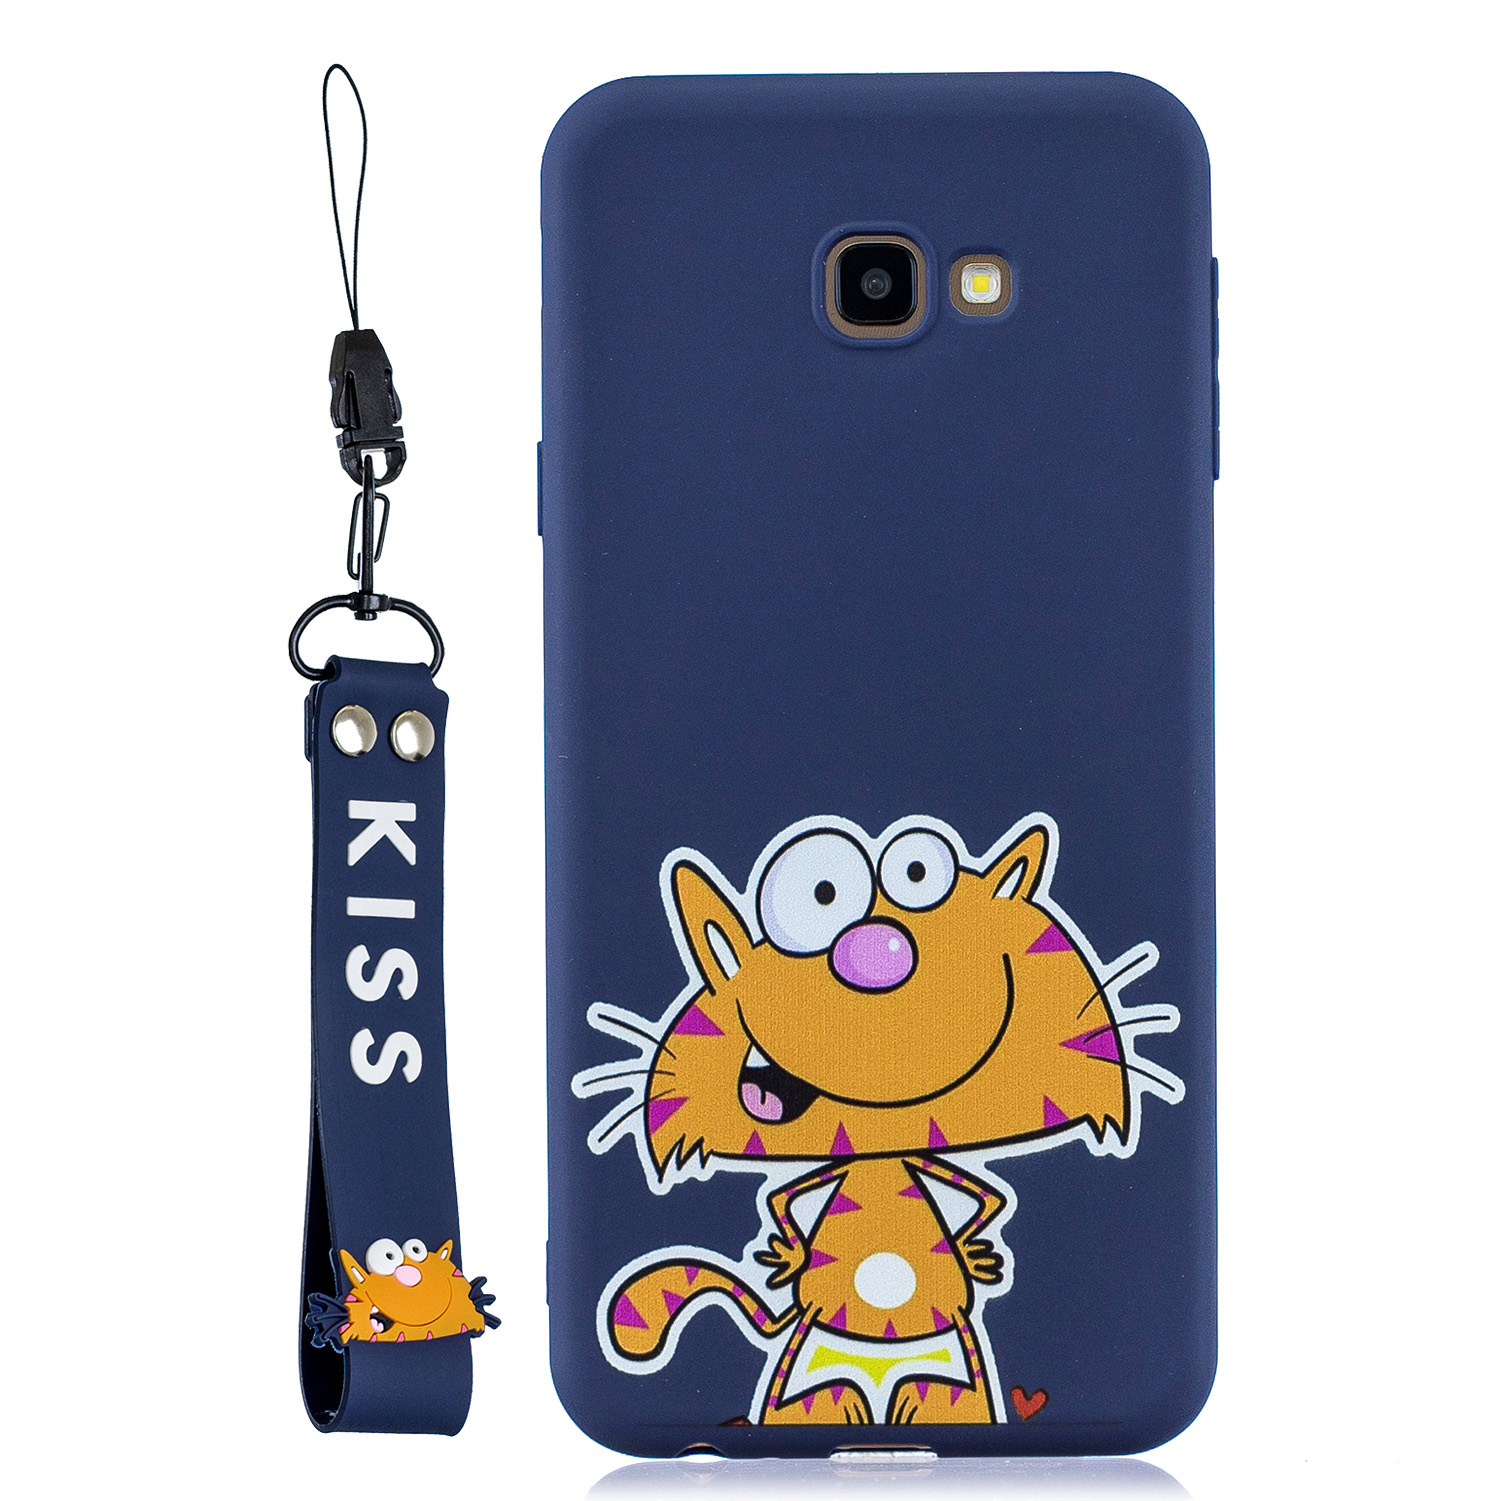 For Samsung A5 2017 Cartoon Lovely Coloured Painted Soft TPU Back Cover Non-slip Shockproof Full Protective Case with Lanyard sapphire